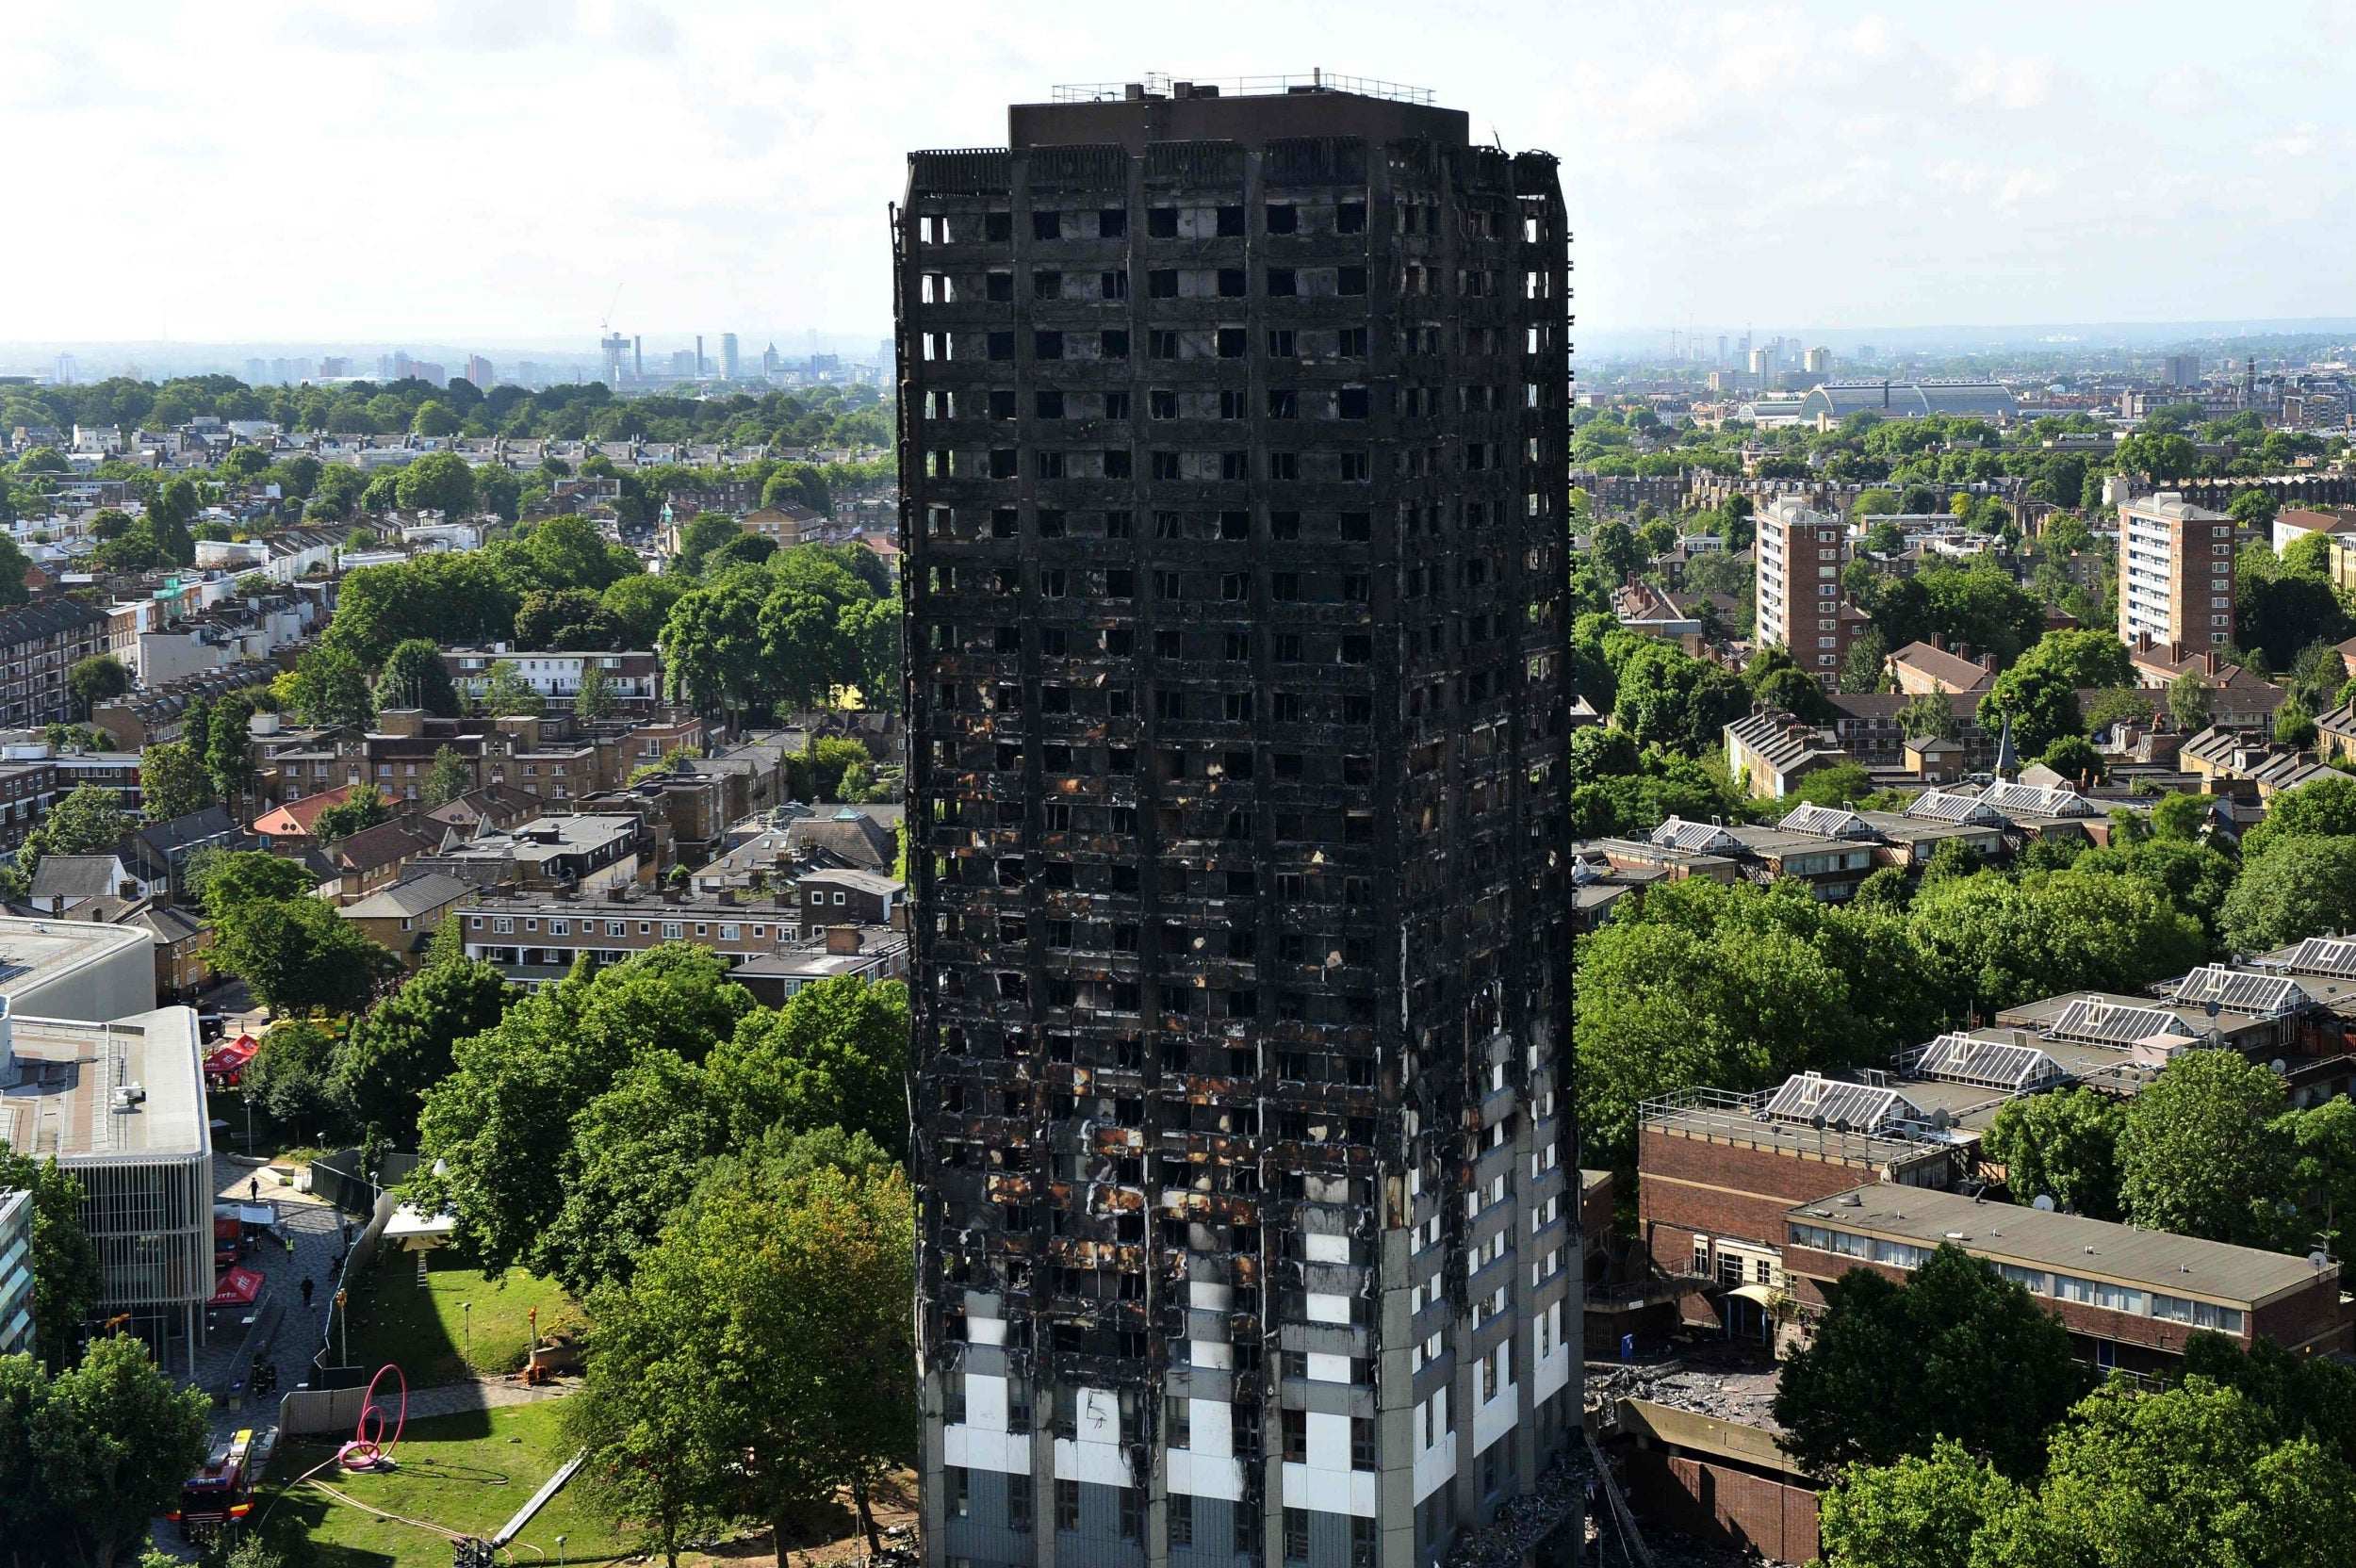 Sutton's Tory MPs fail to back putting Grenfell recommendations into law